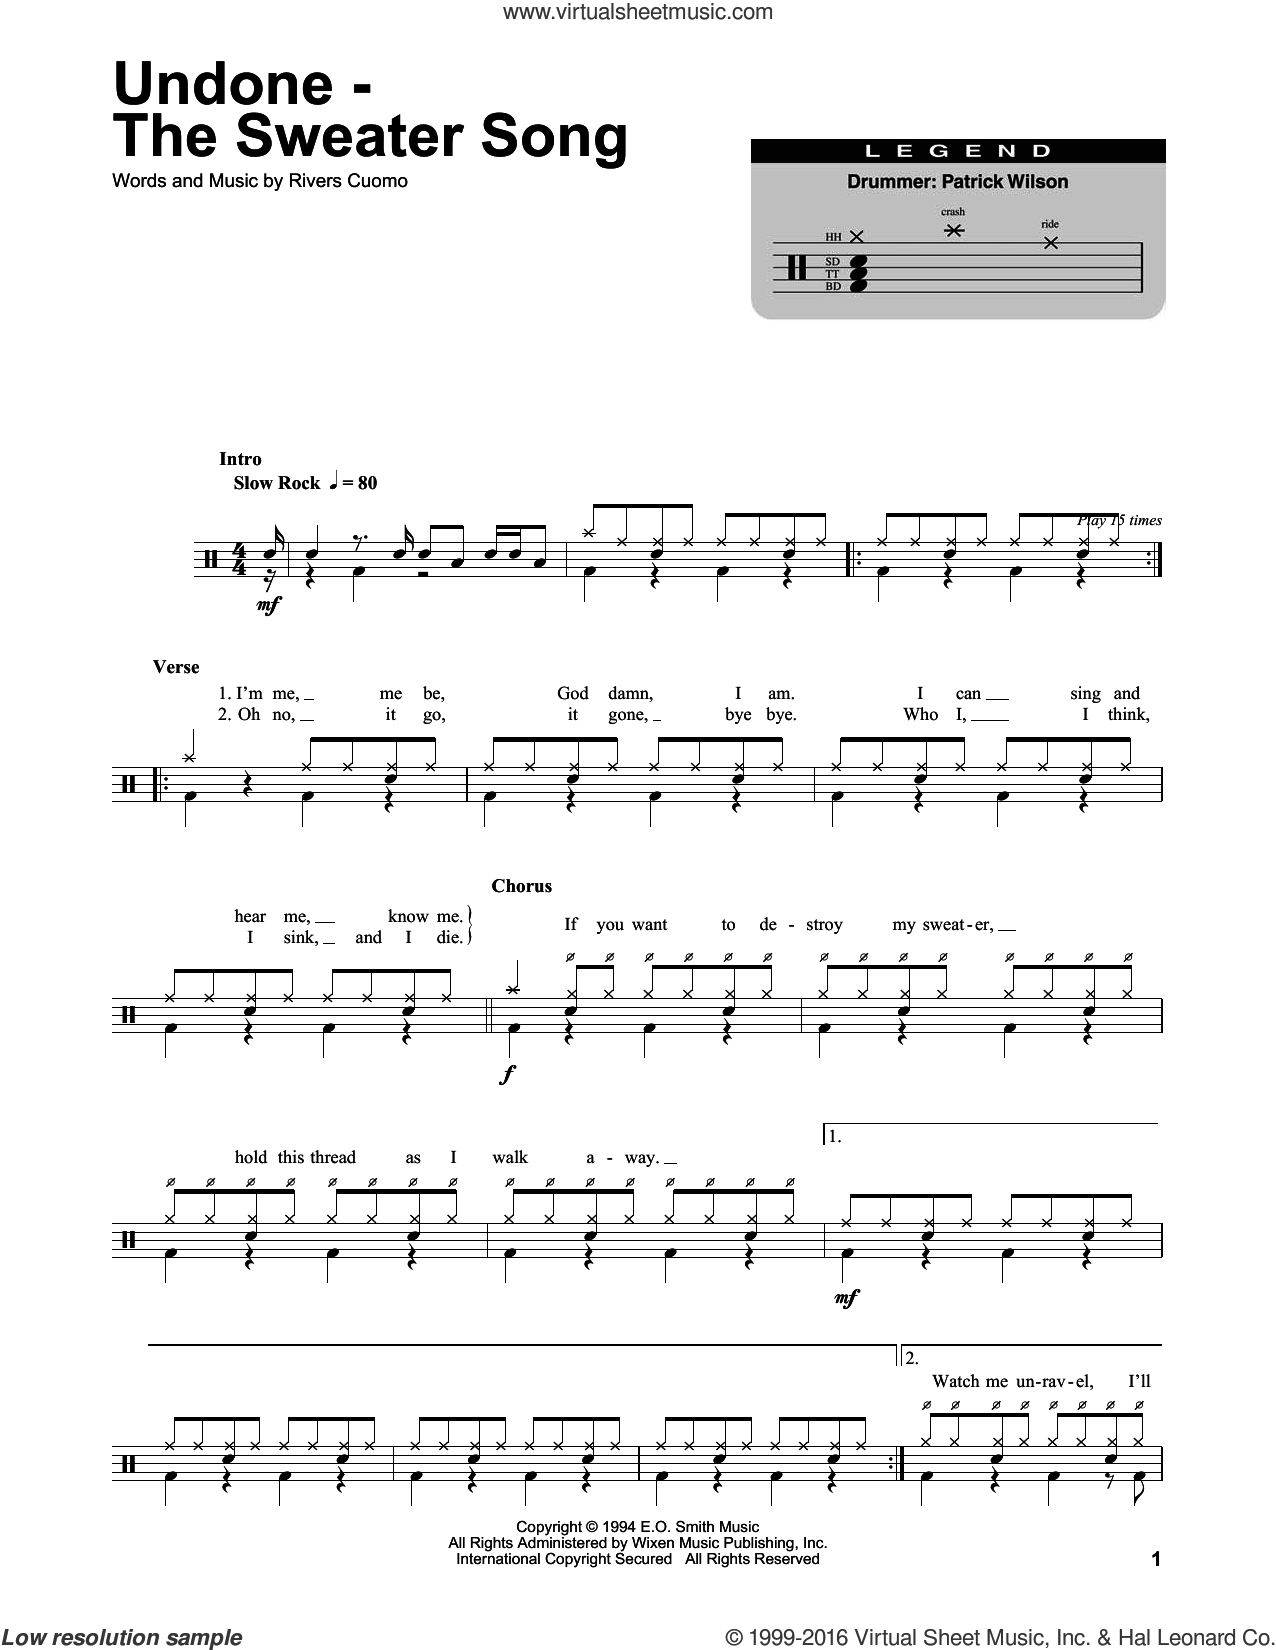 Undone - The Sweater Song sheet music for drums by Weezer, intermediate drums. Score Image Preview.